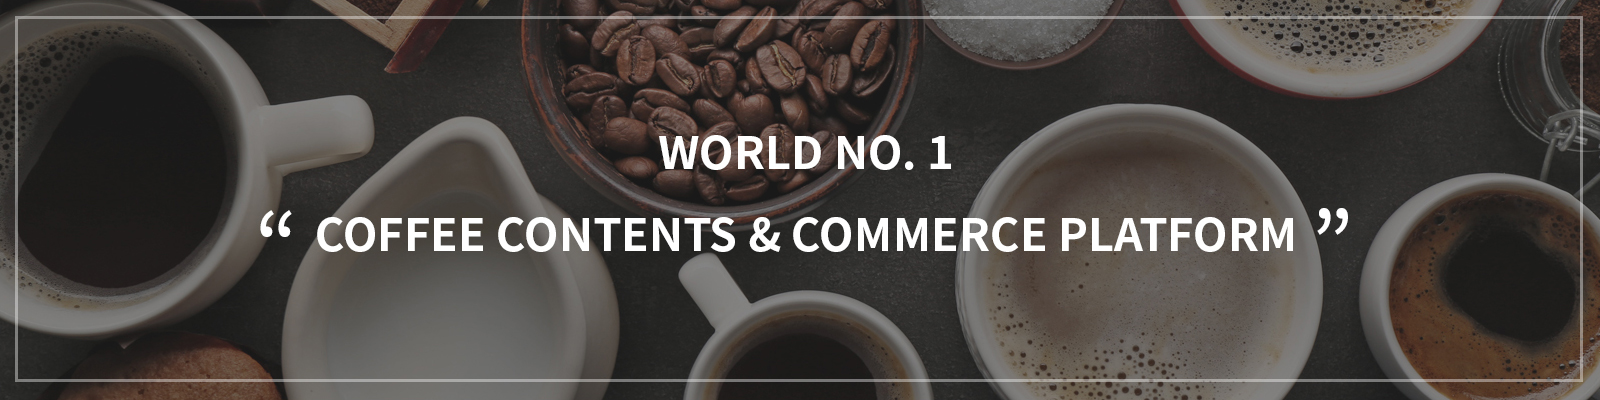 World No. 1 Coffee Contents & Commerce Platform